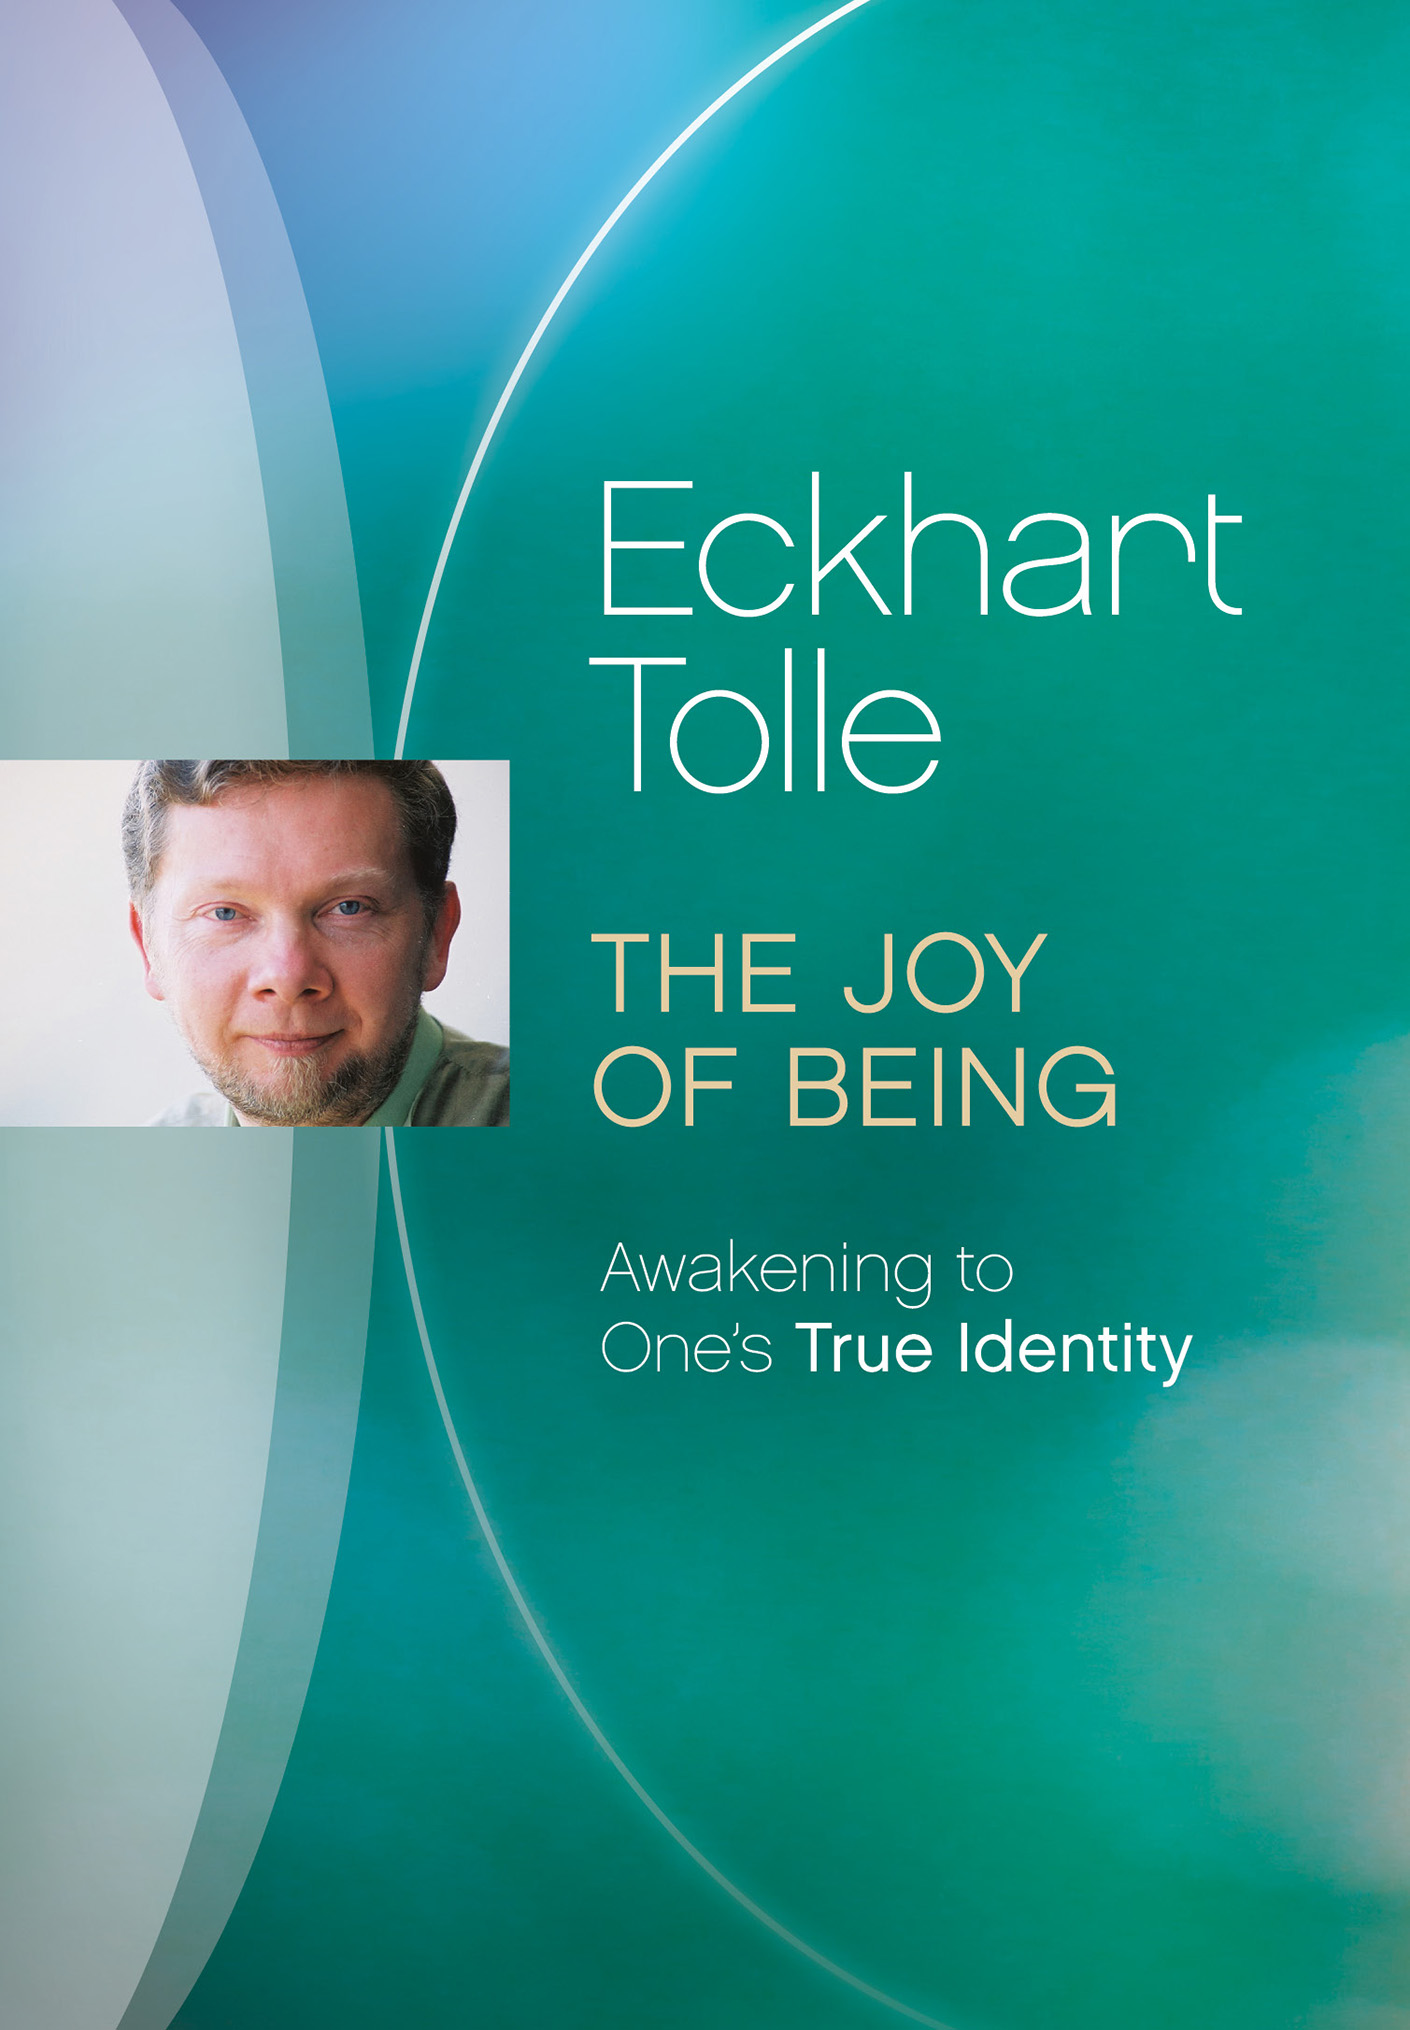 Eckhart Tolle: The Joy of Being - Awakening to One's True Identity